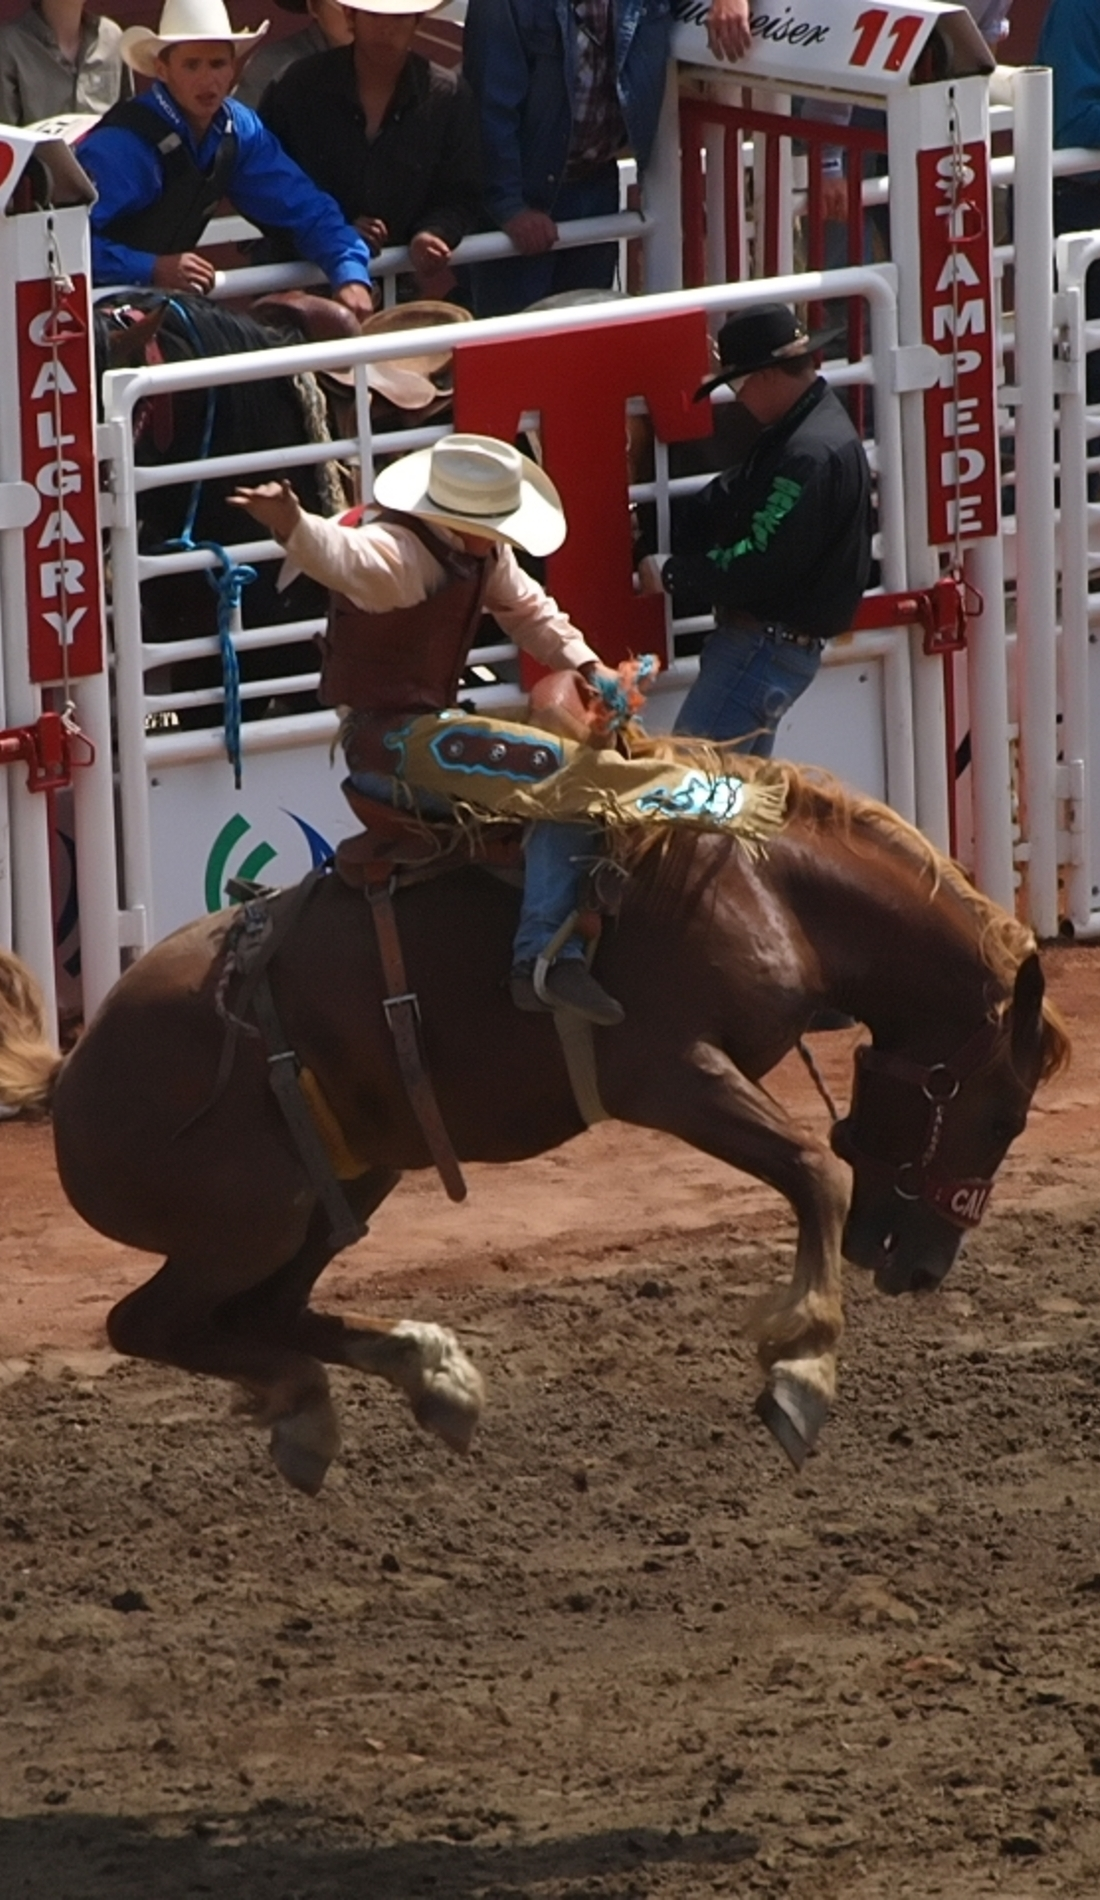 A Calgary Stampede Rodeo live event